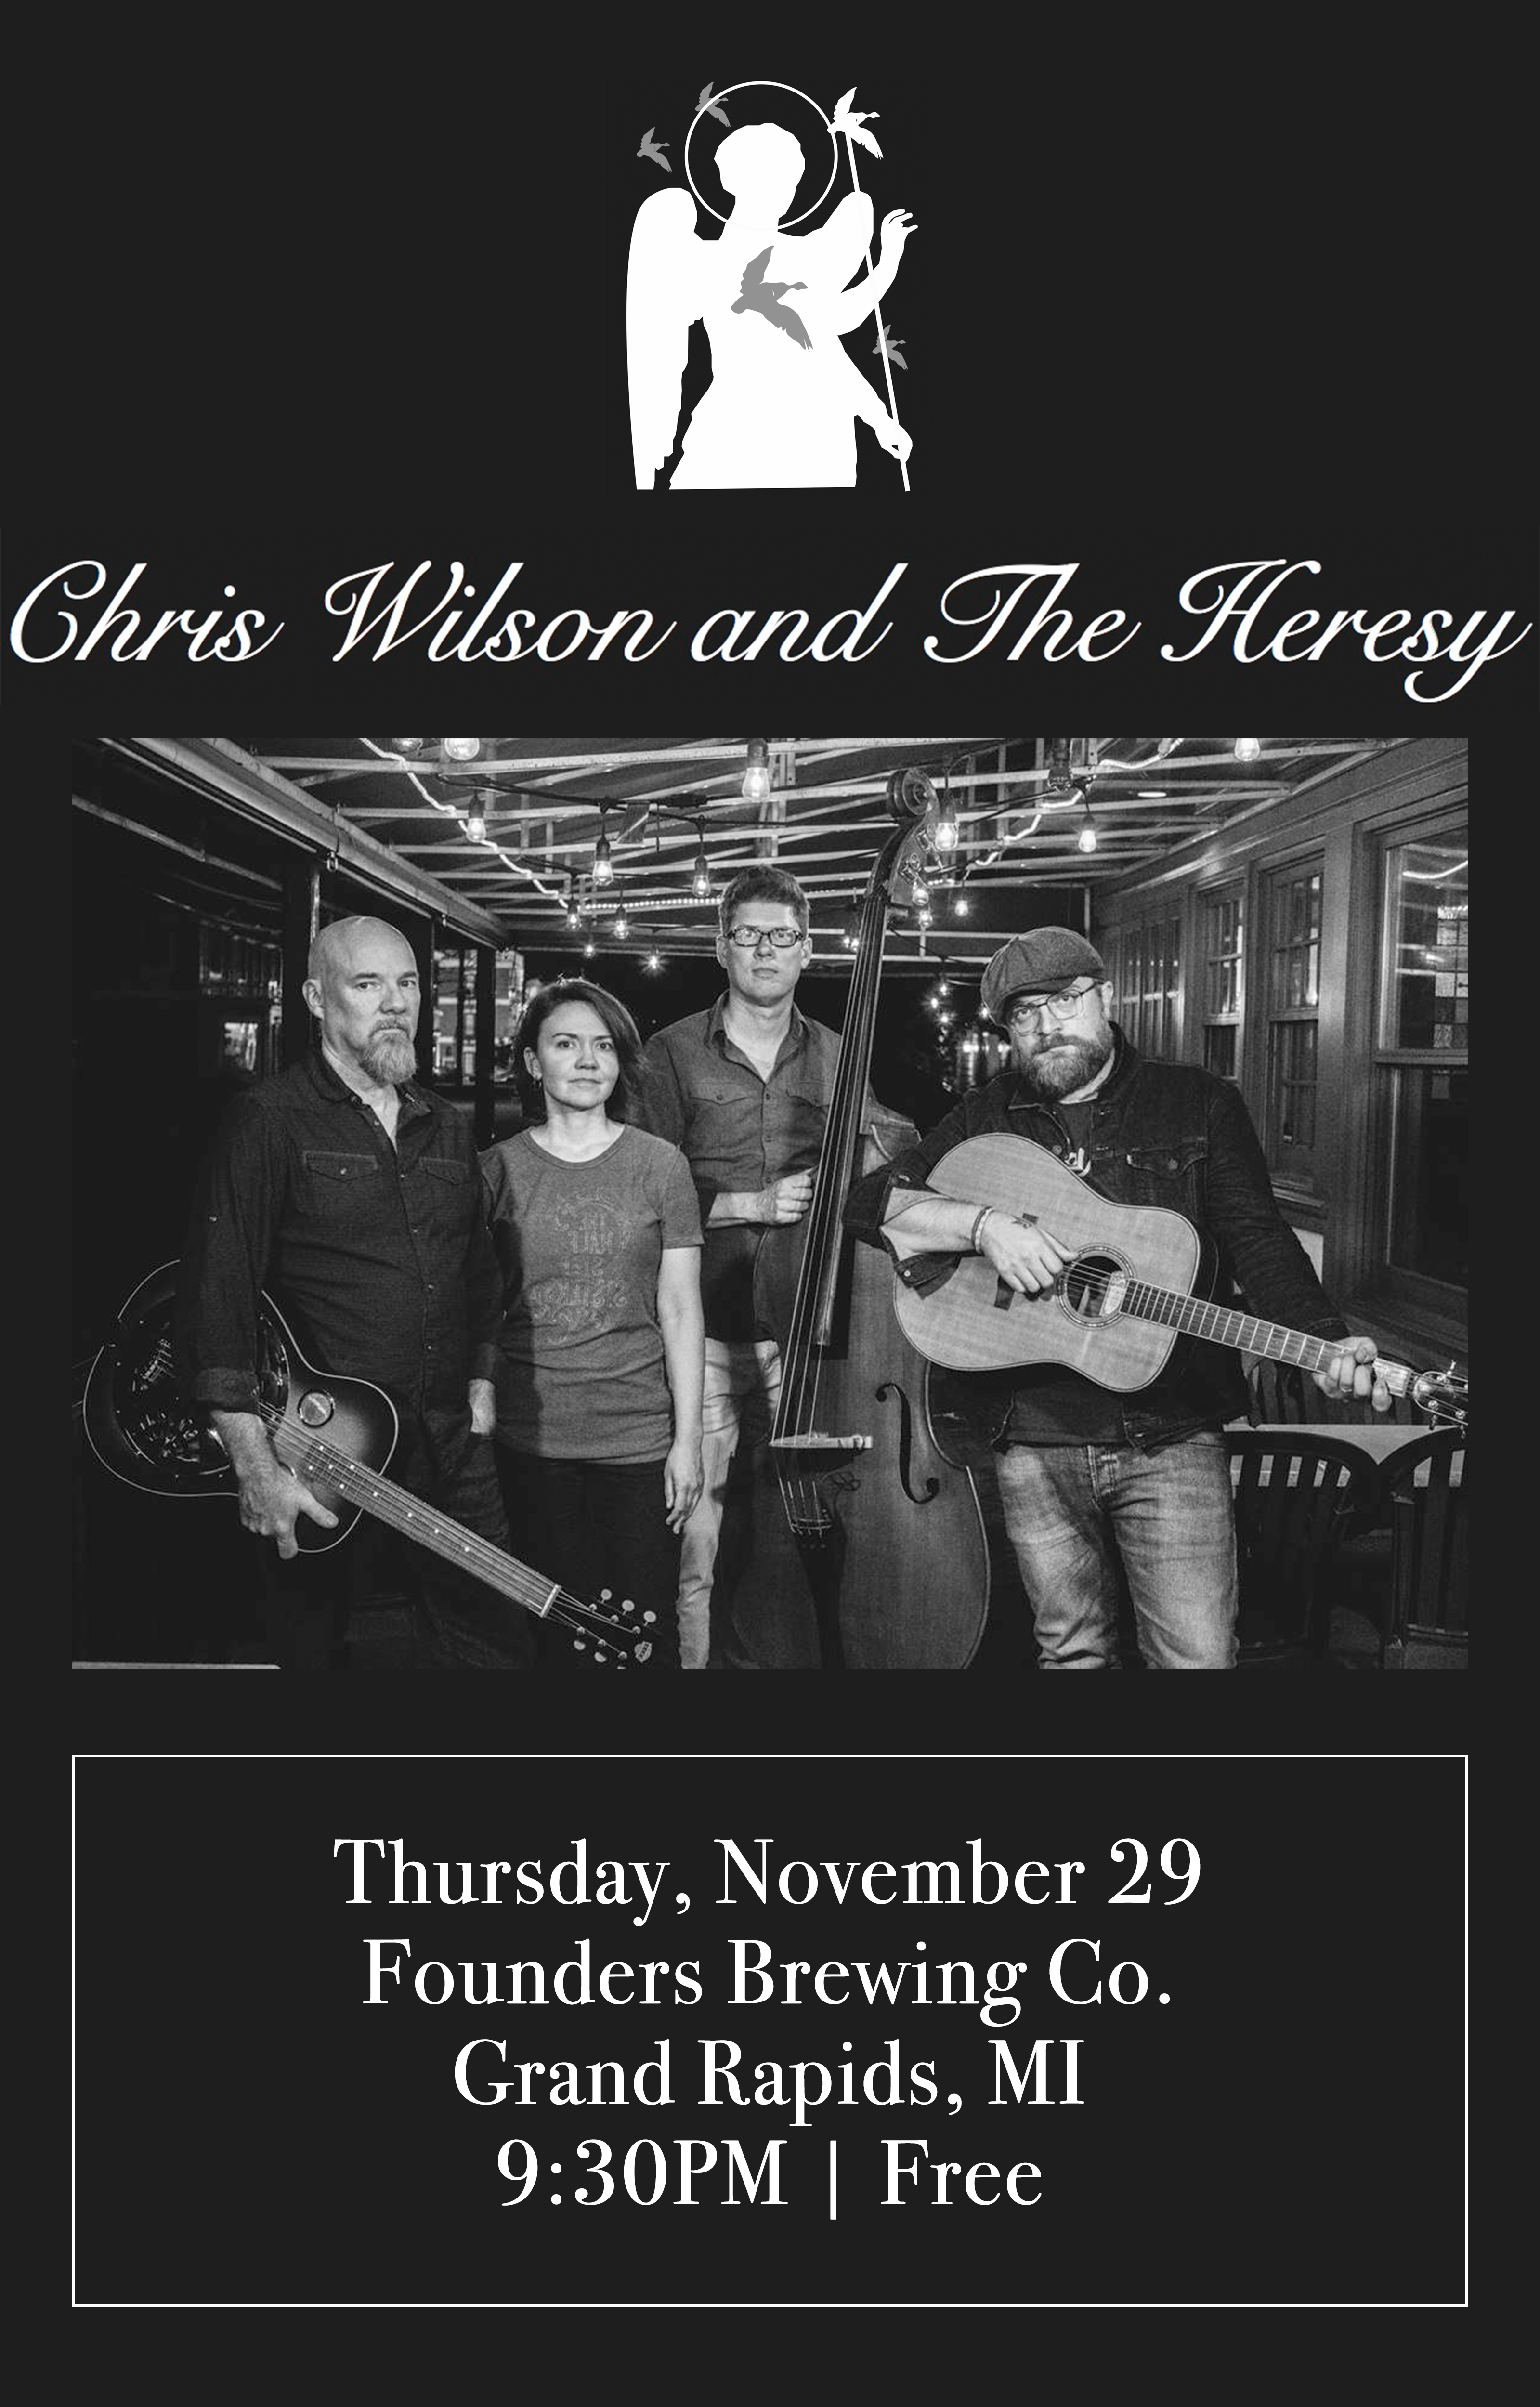 Chris Wilson and The Heresy event poster